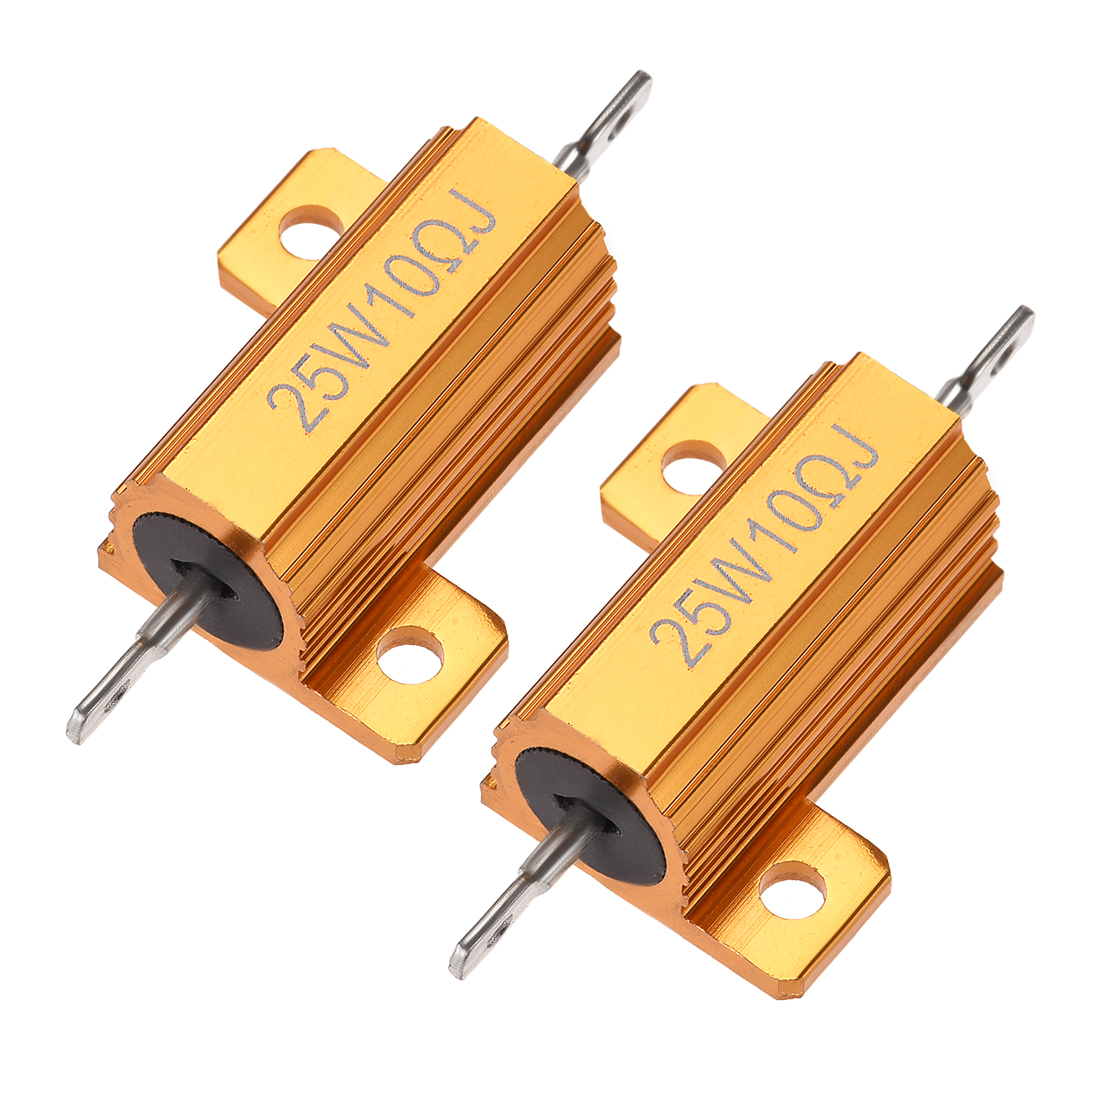 25 Watt 10 Ohm 5% Aluminum Housing Resistor Wirewound Resistor Gold Tone 2 Pcs